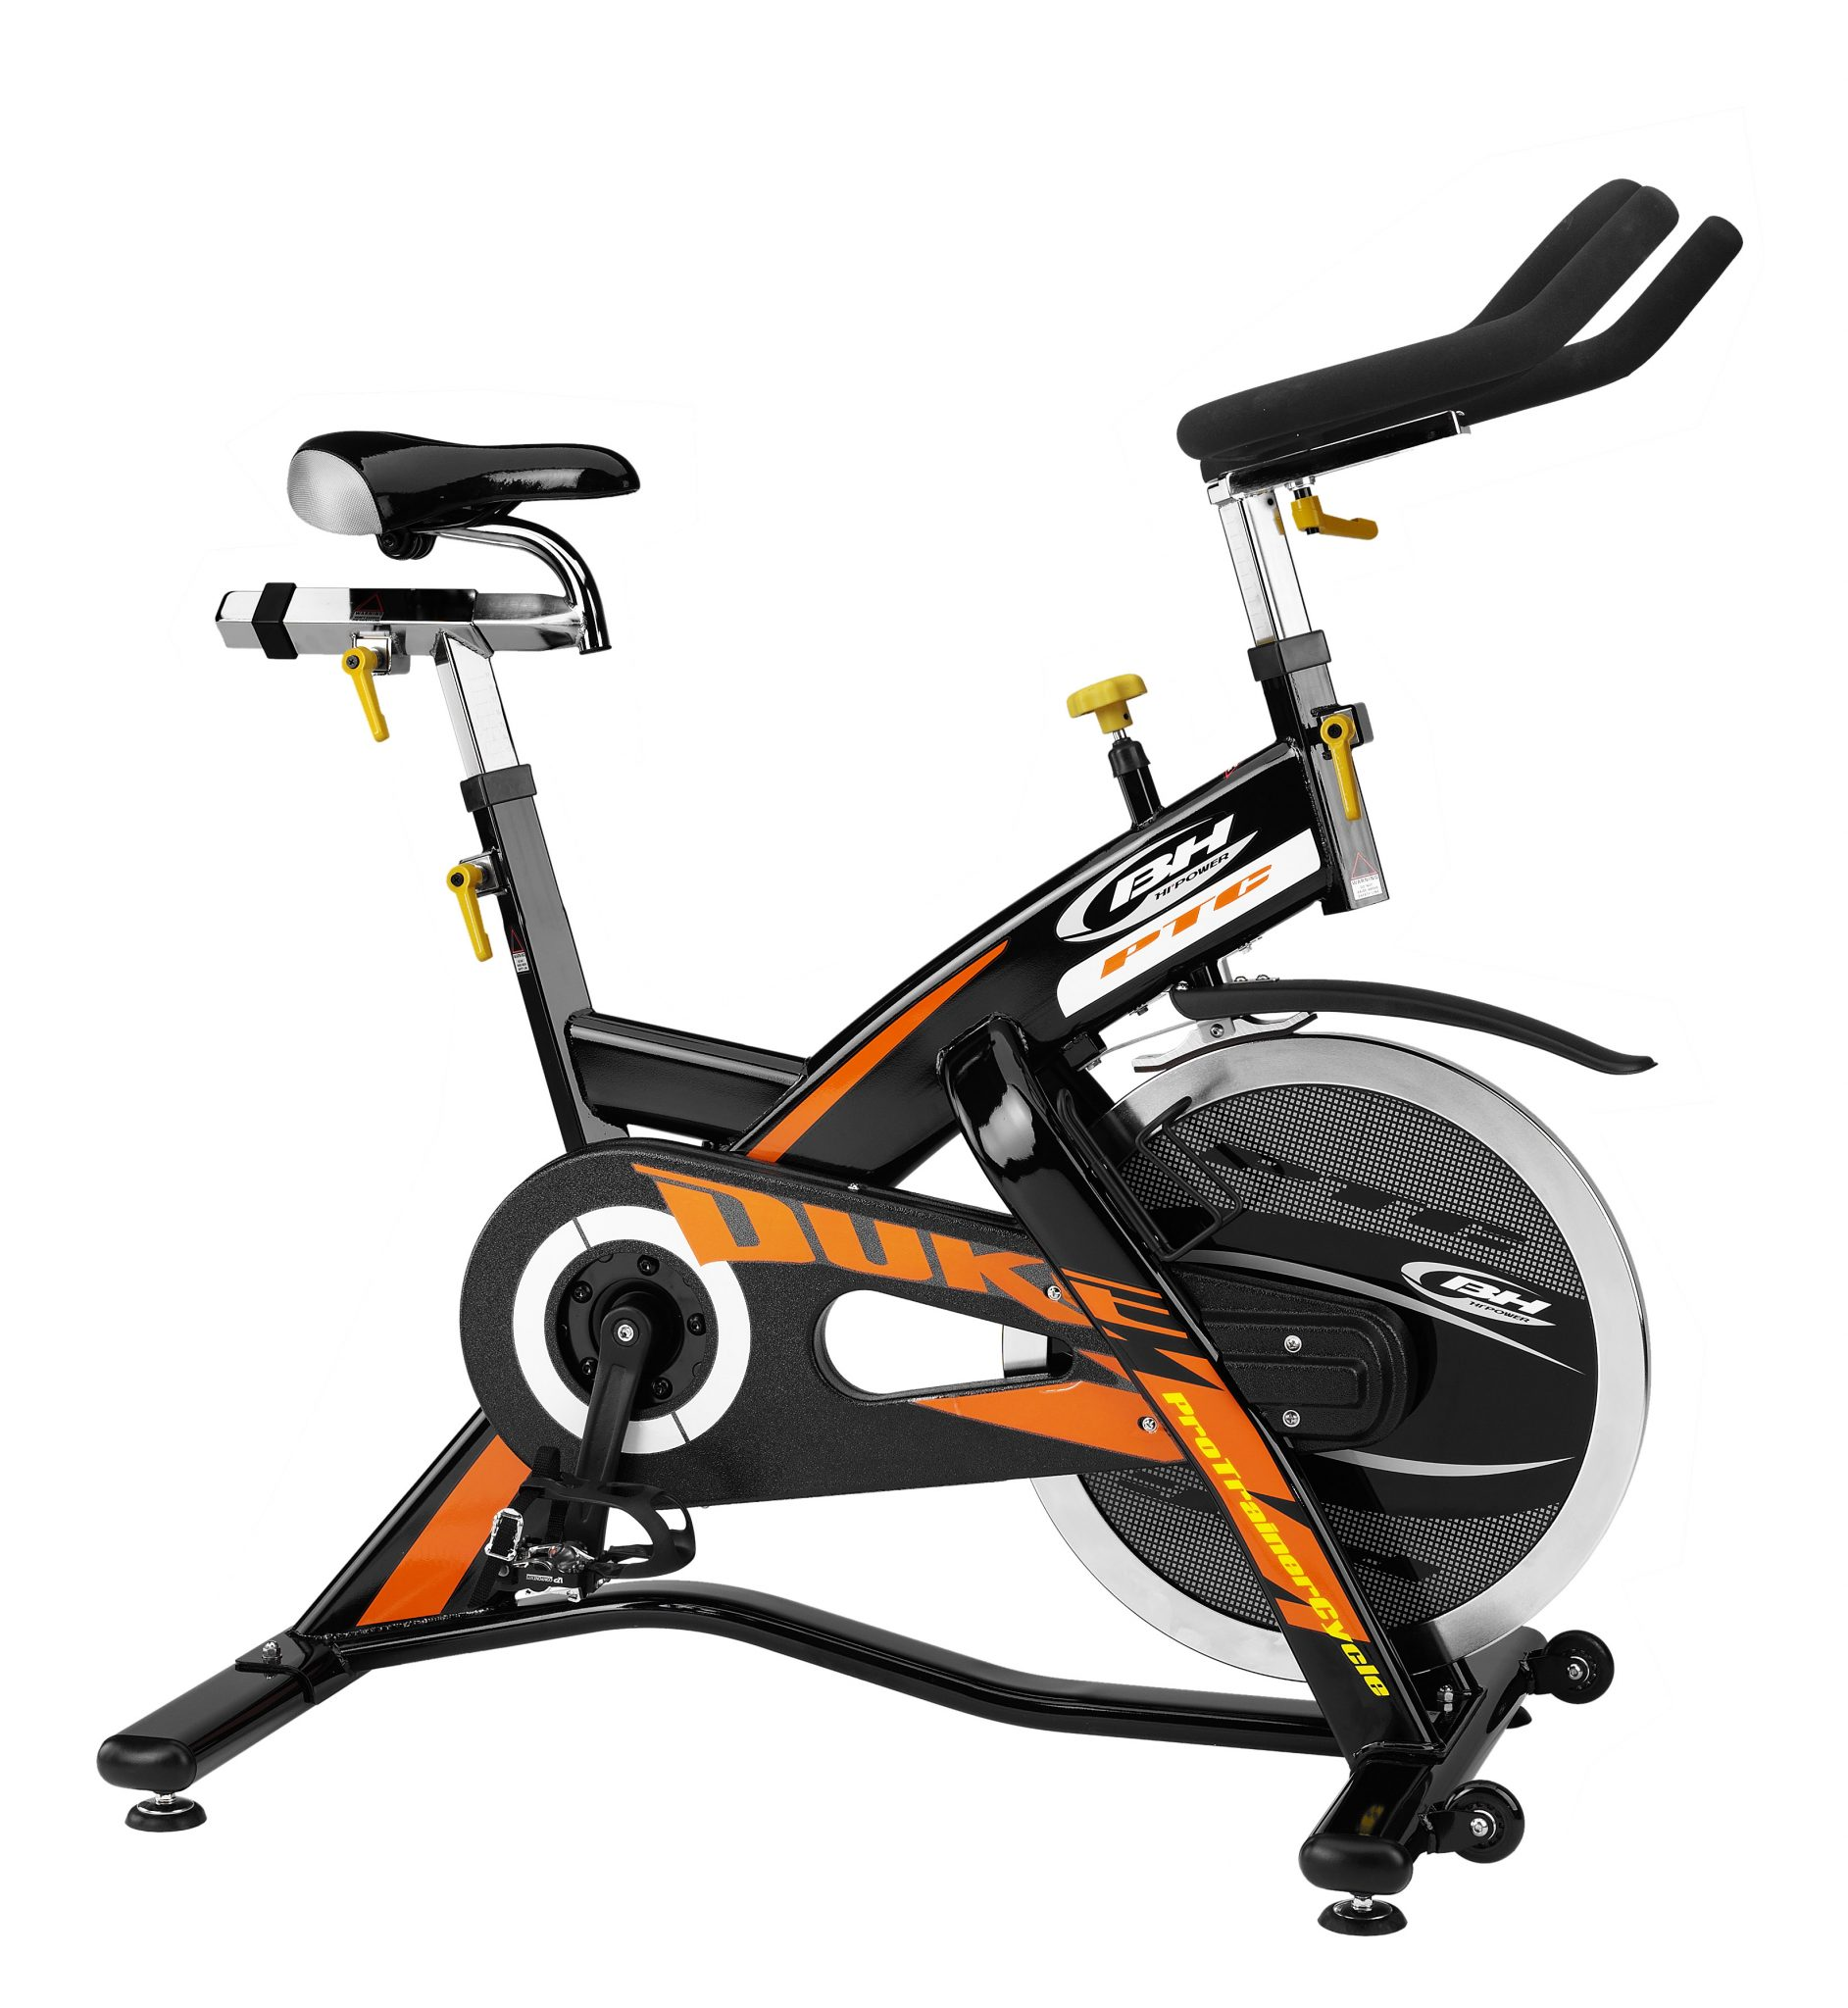 Fitness Equipment Orange County: Hire Deluxe Home Race Bike